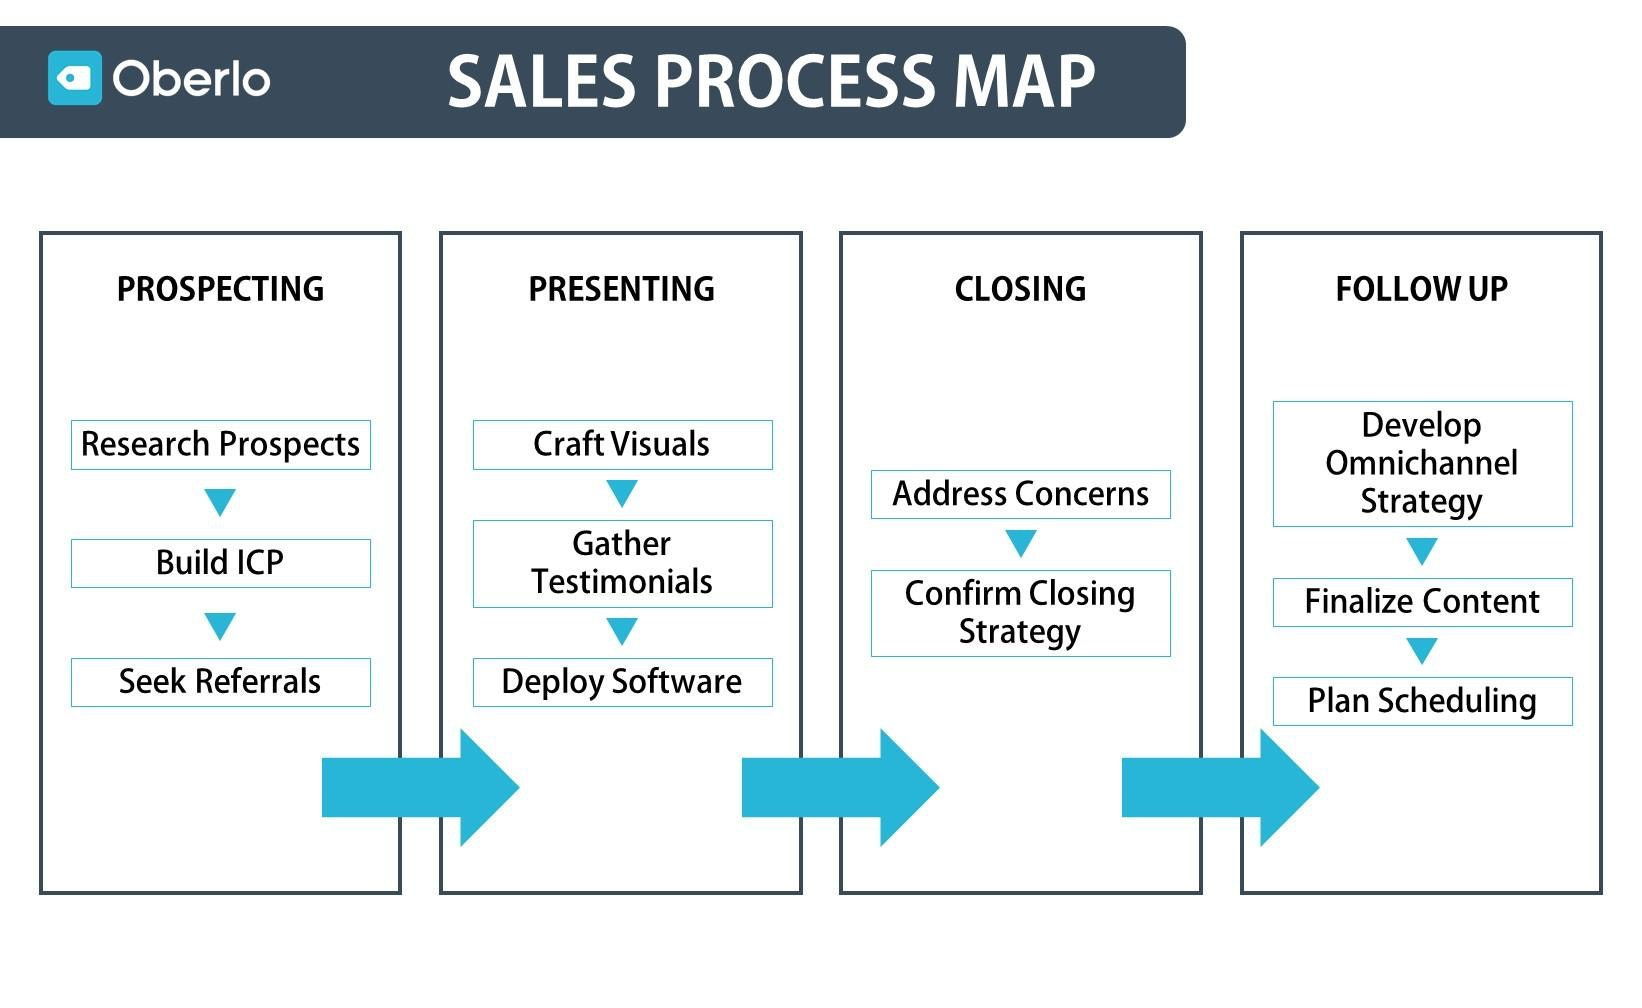 sales process map by Oberlo